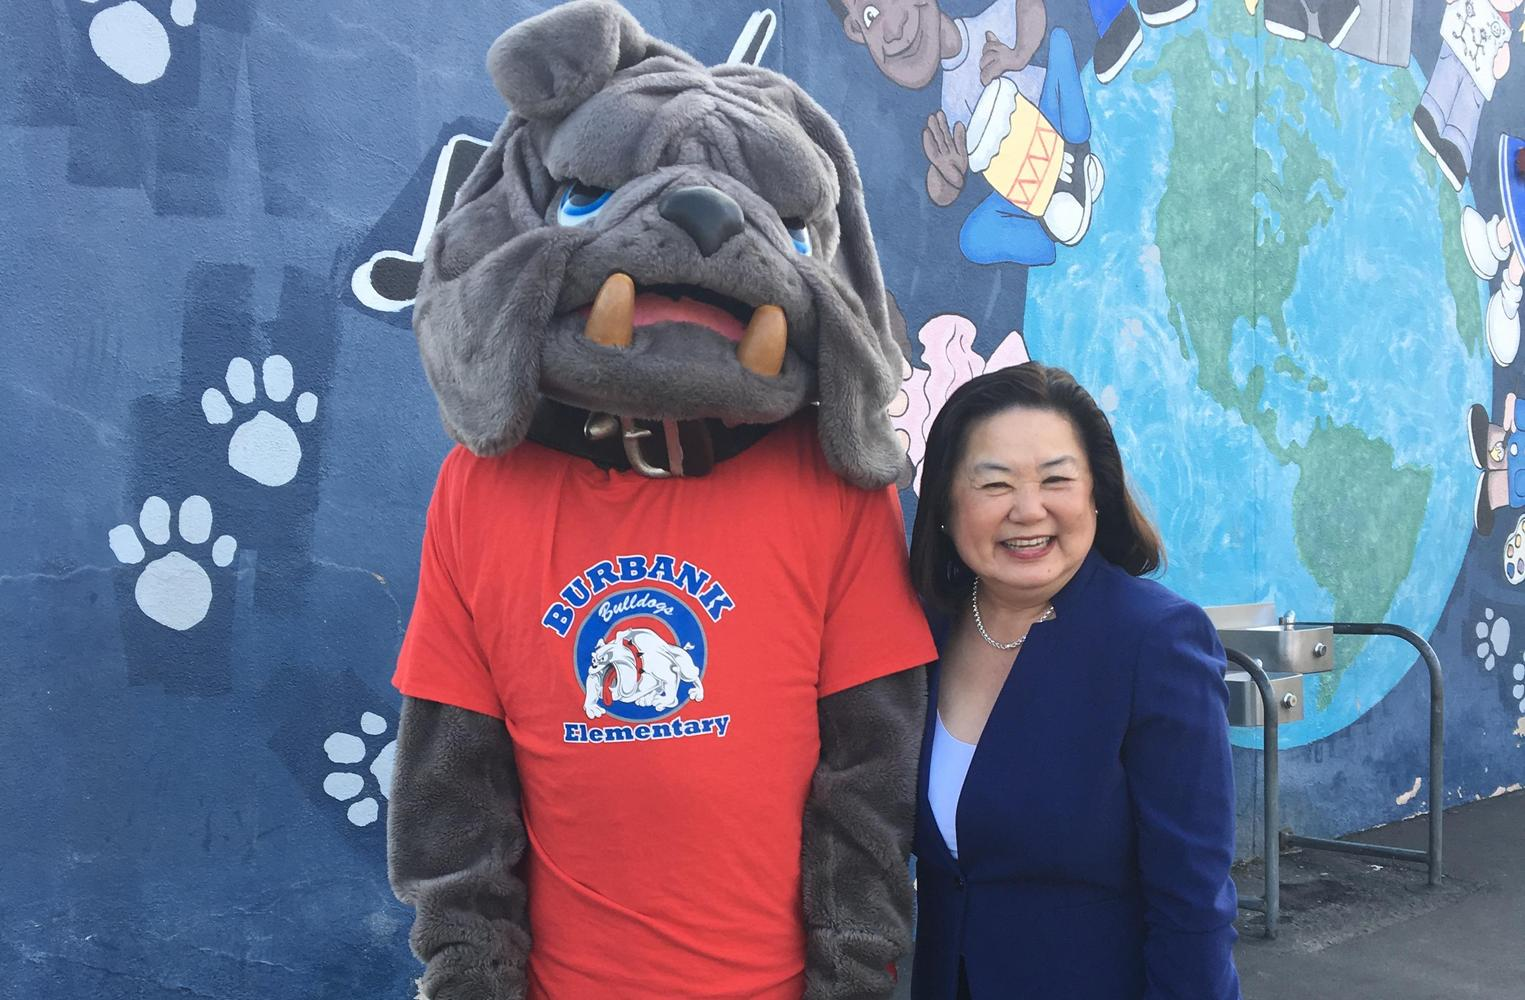 Superintendent and school mascot